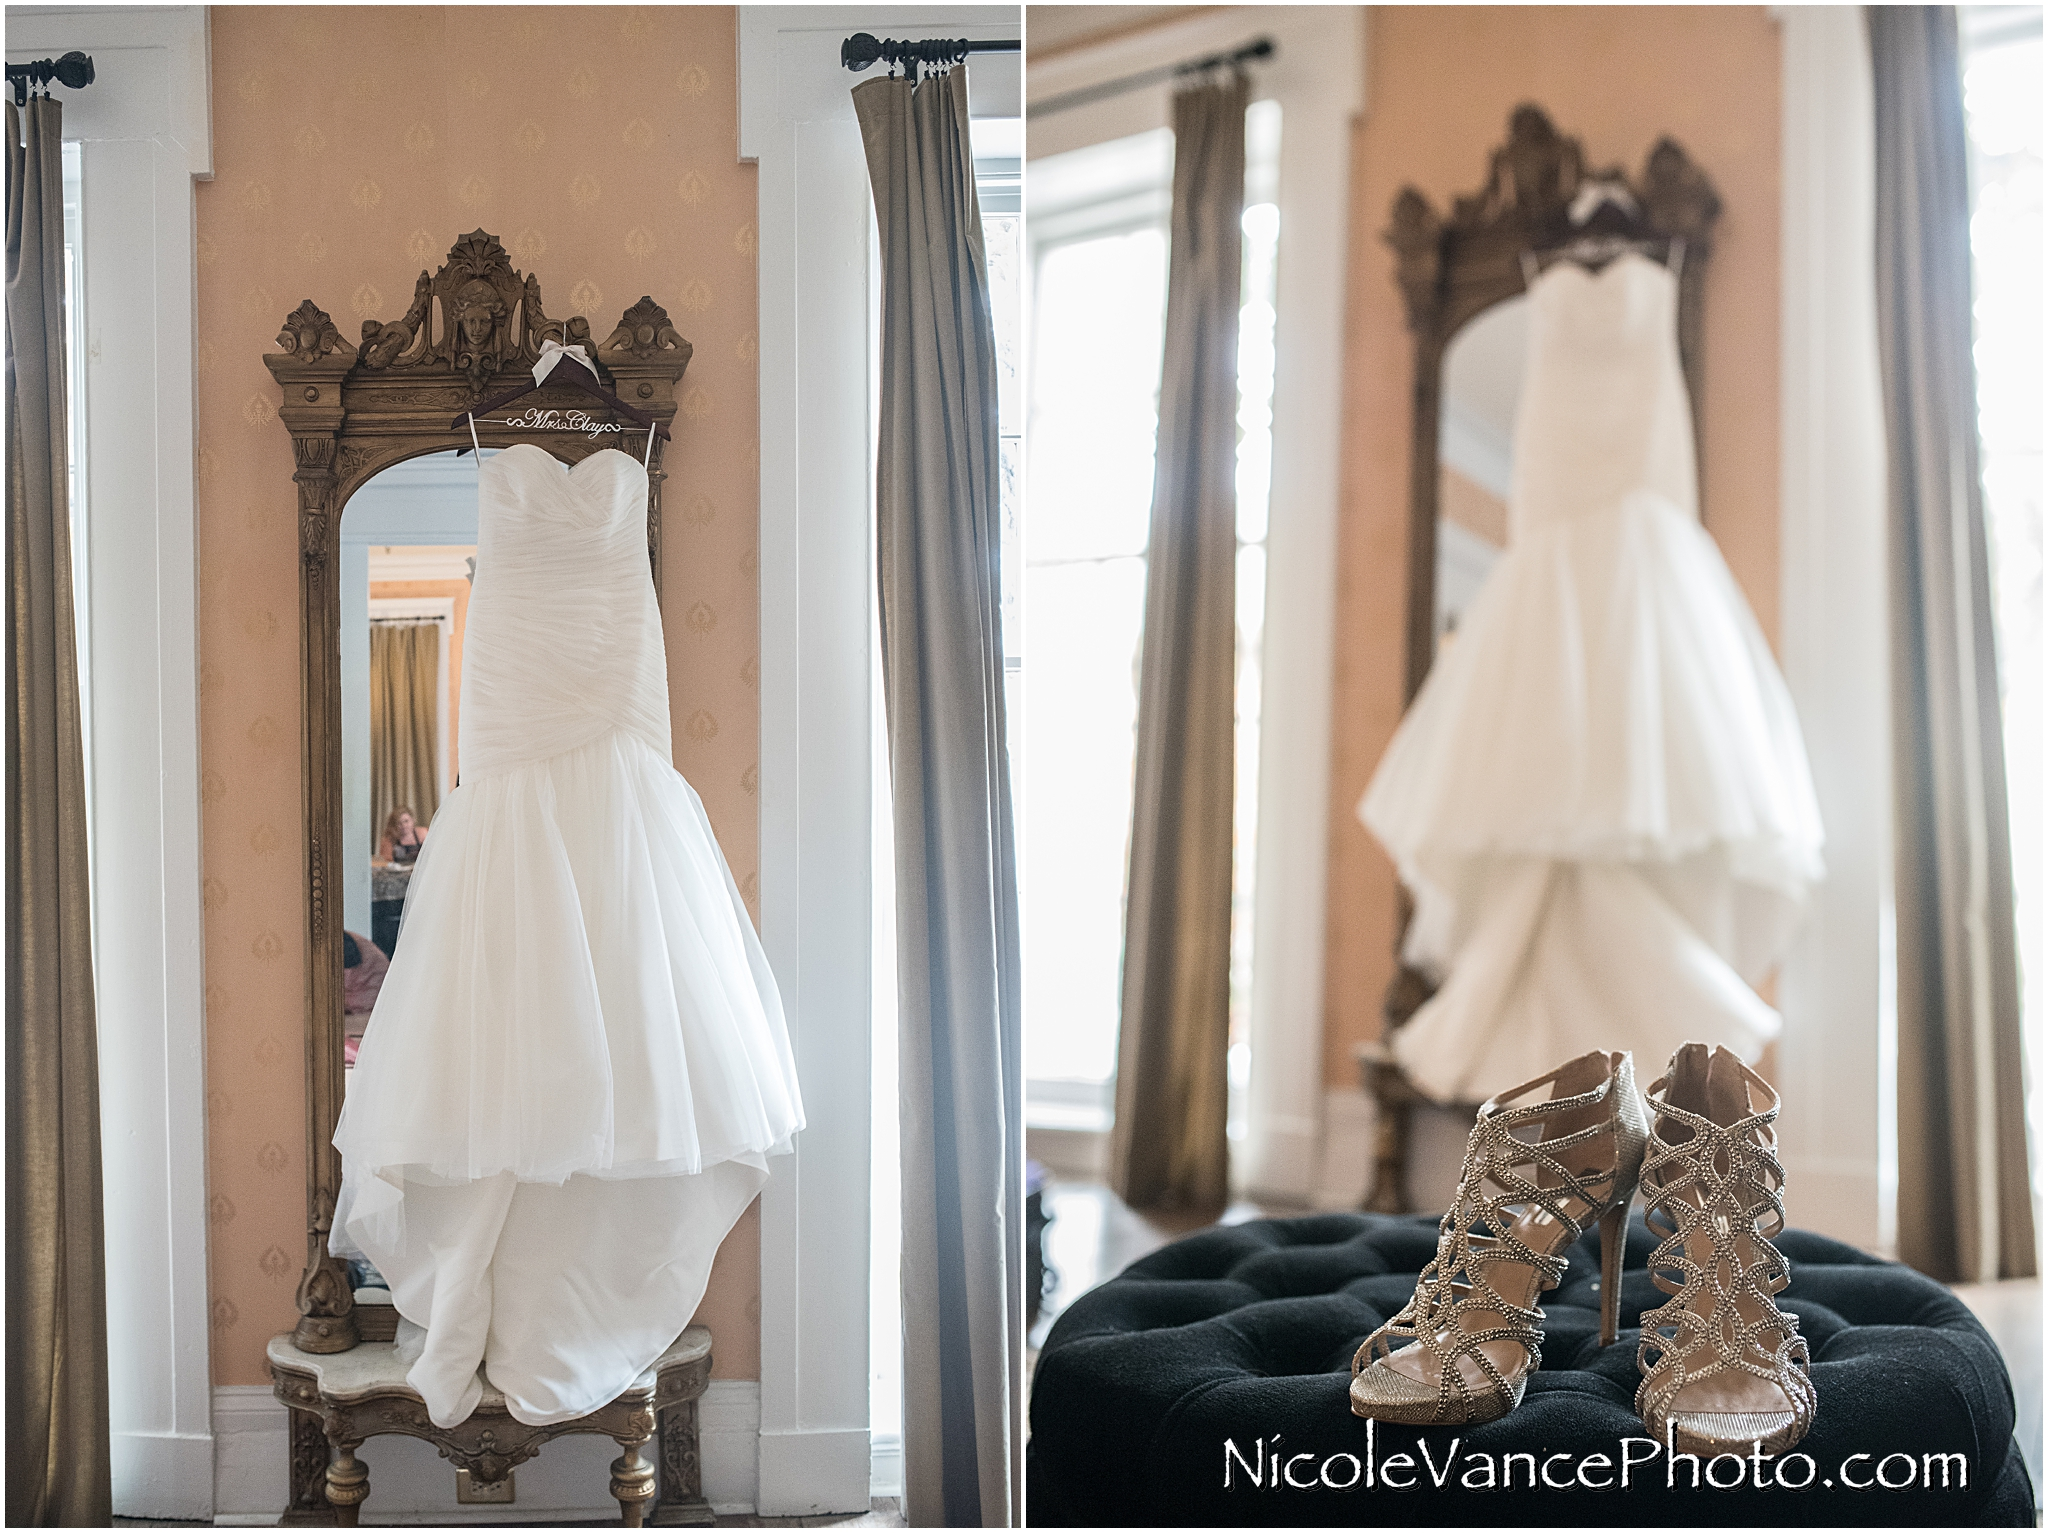 The bride's dress hangs in the bridal suite at Linden Row Inn.